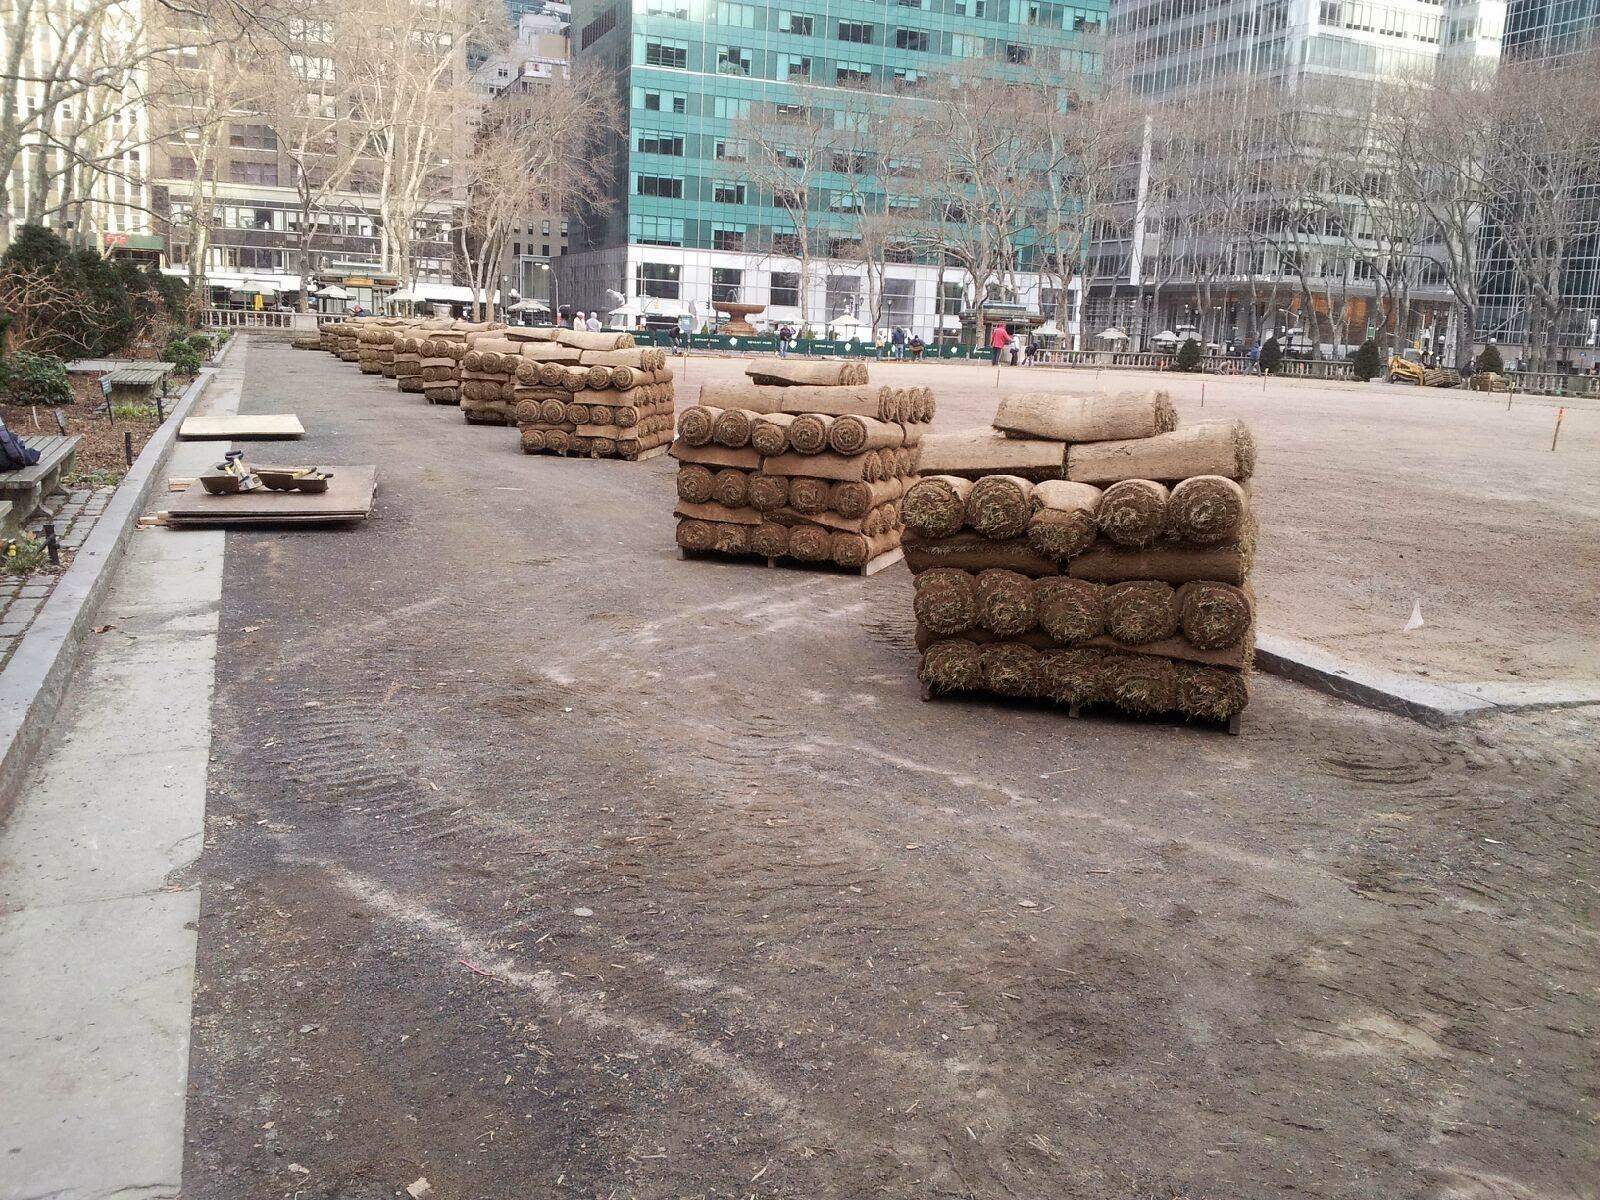 Bryant Park Blog: Signs of Spring: Roll Out the Emerald Carpet